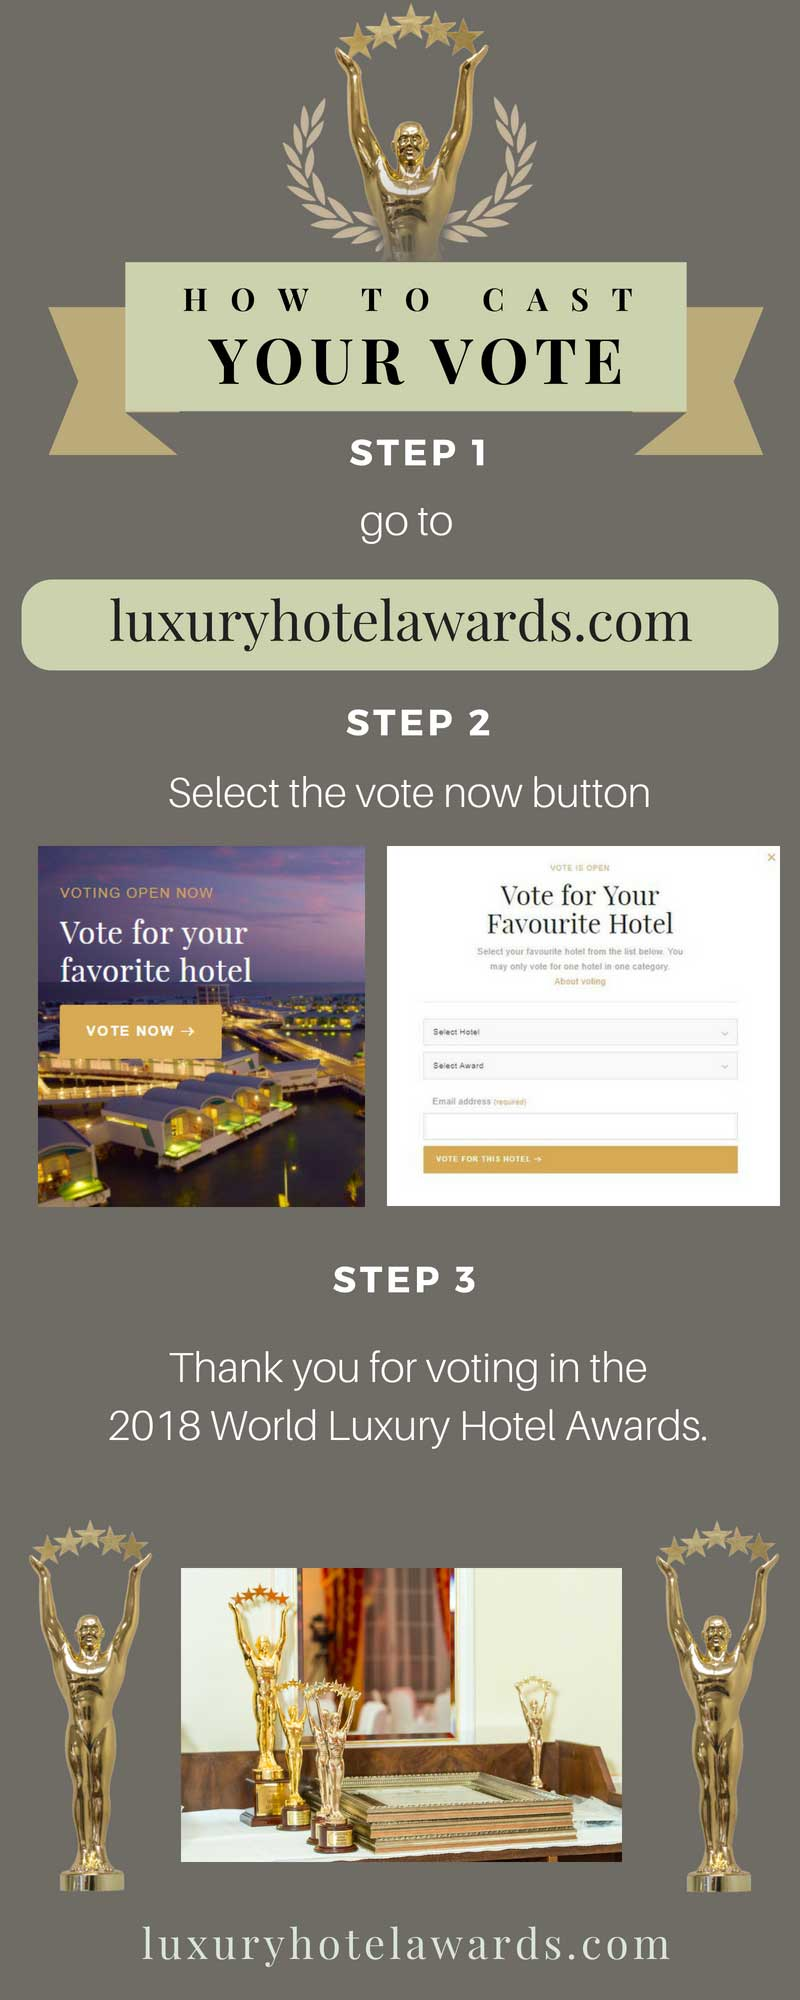 17-How-to-cast-your-vote-Luxury-Hotel-Awards